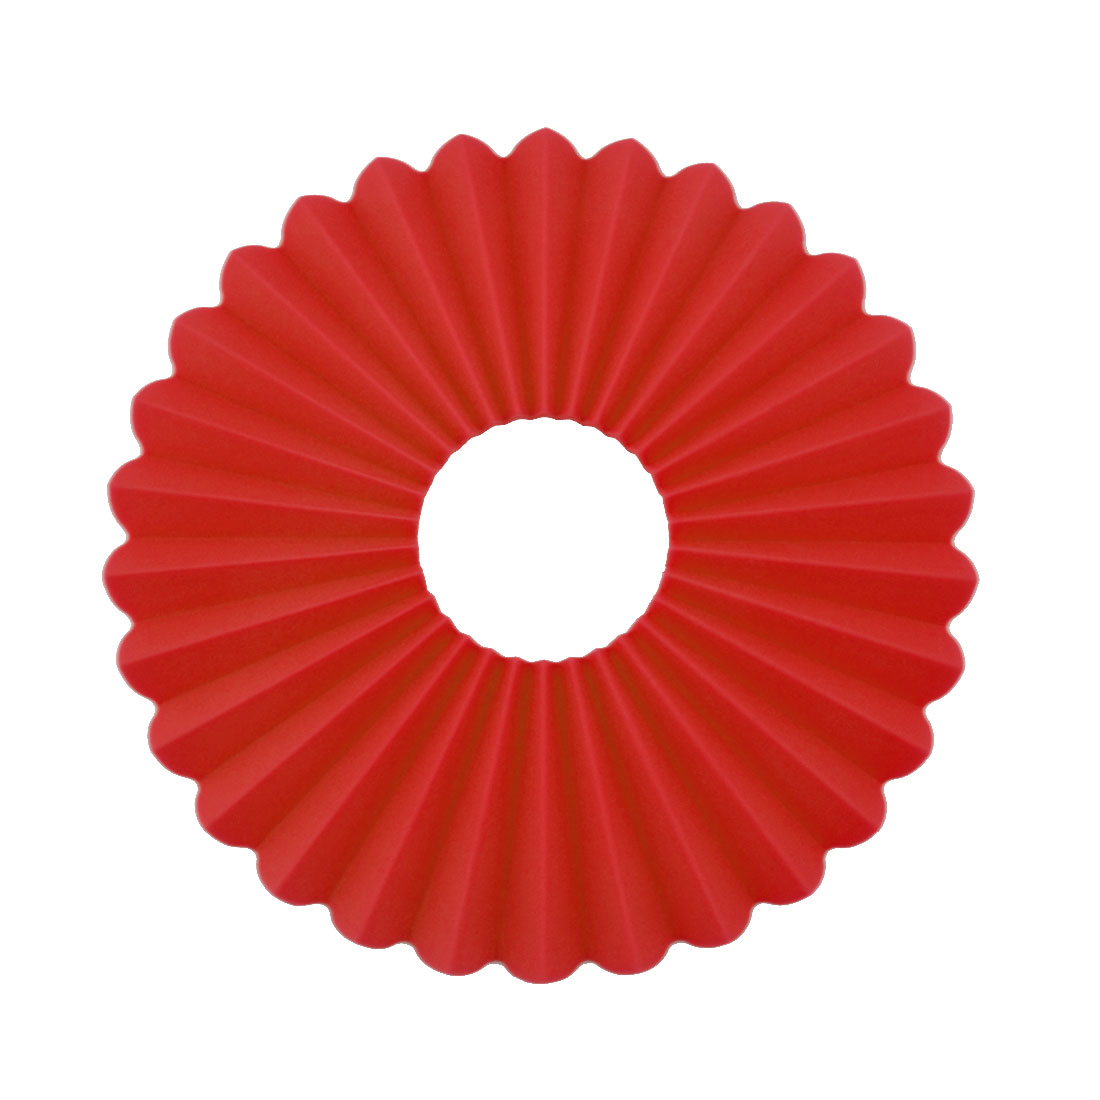 Silicone Plicated Multifunction Table Heat Resistant Mat Coaster Cushion Placemat Pad Red